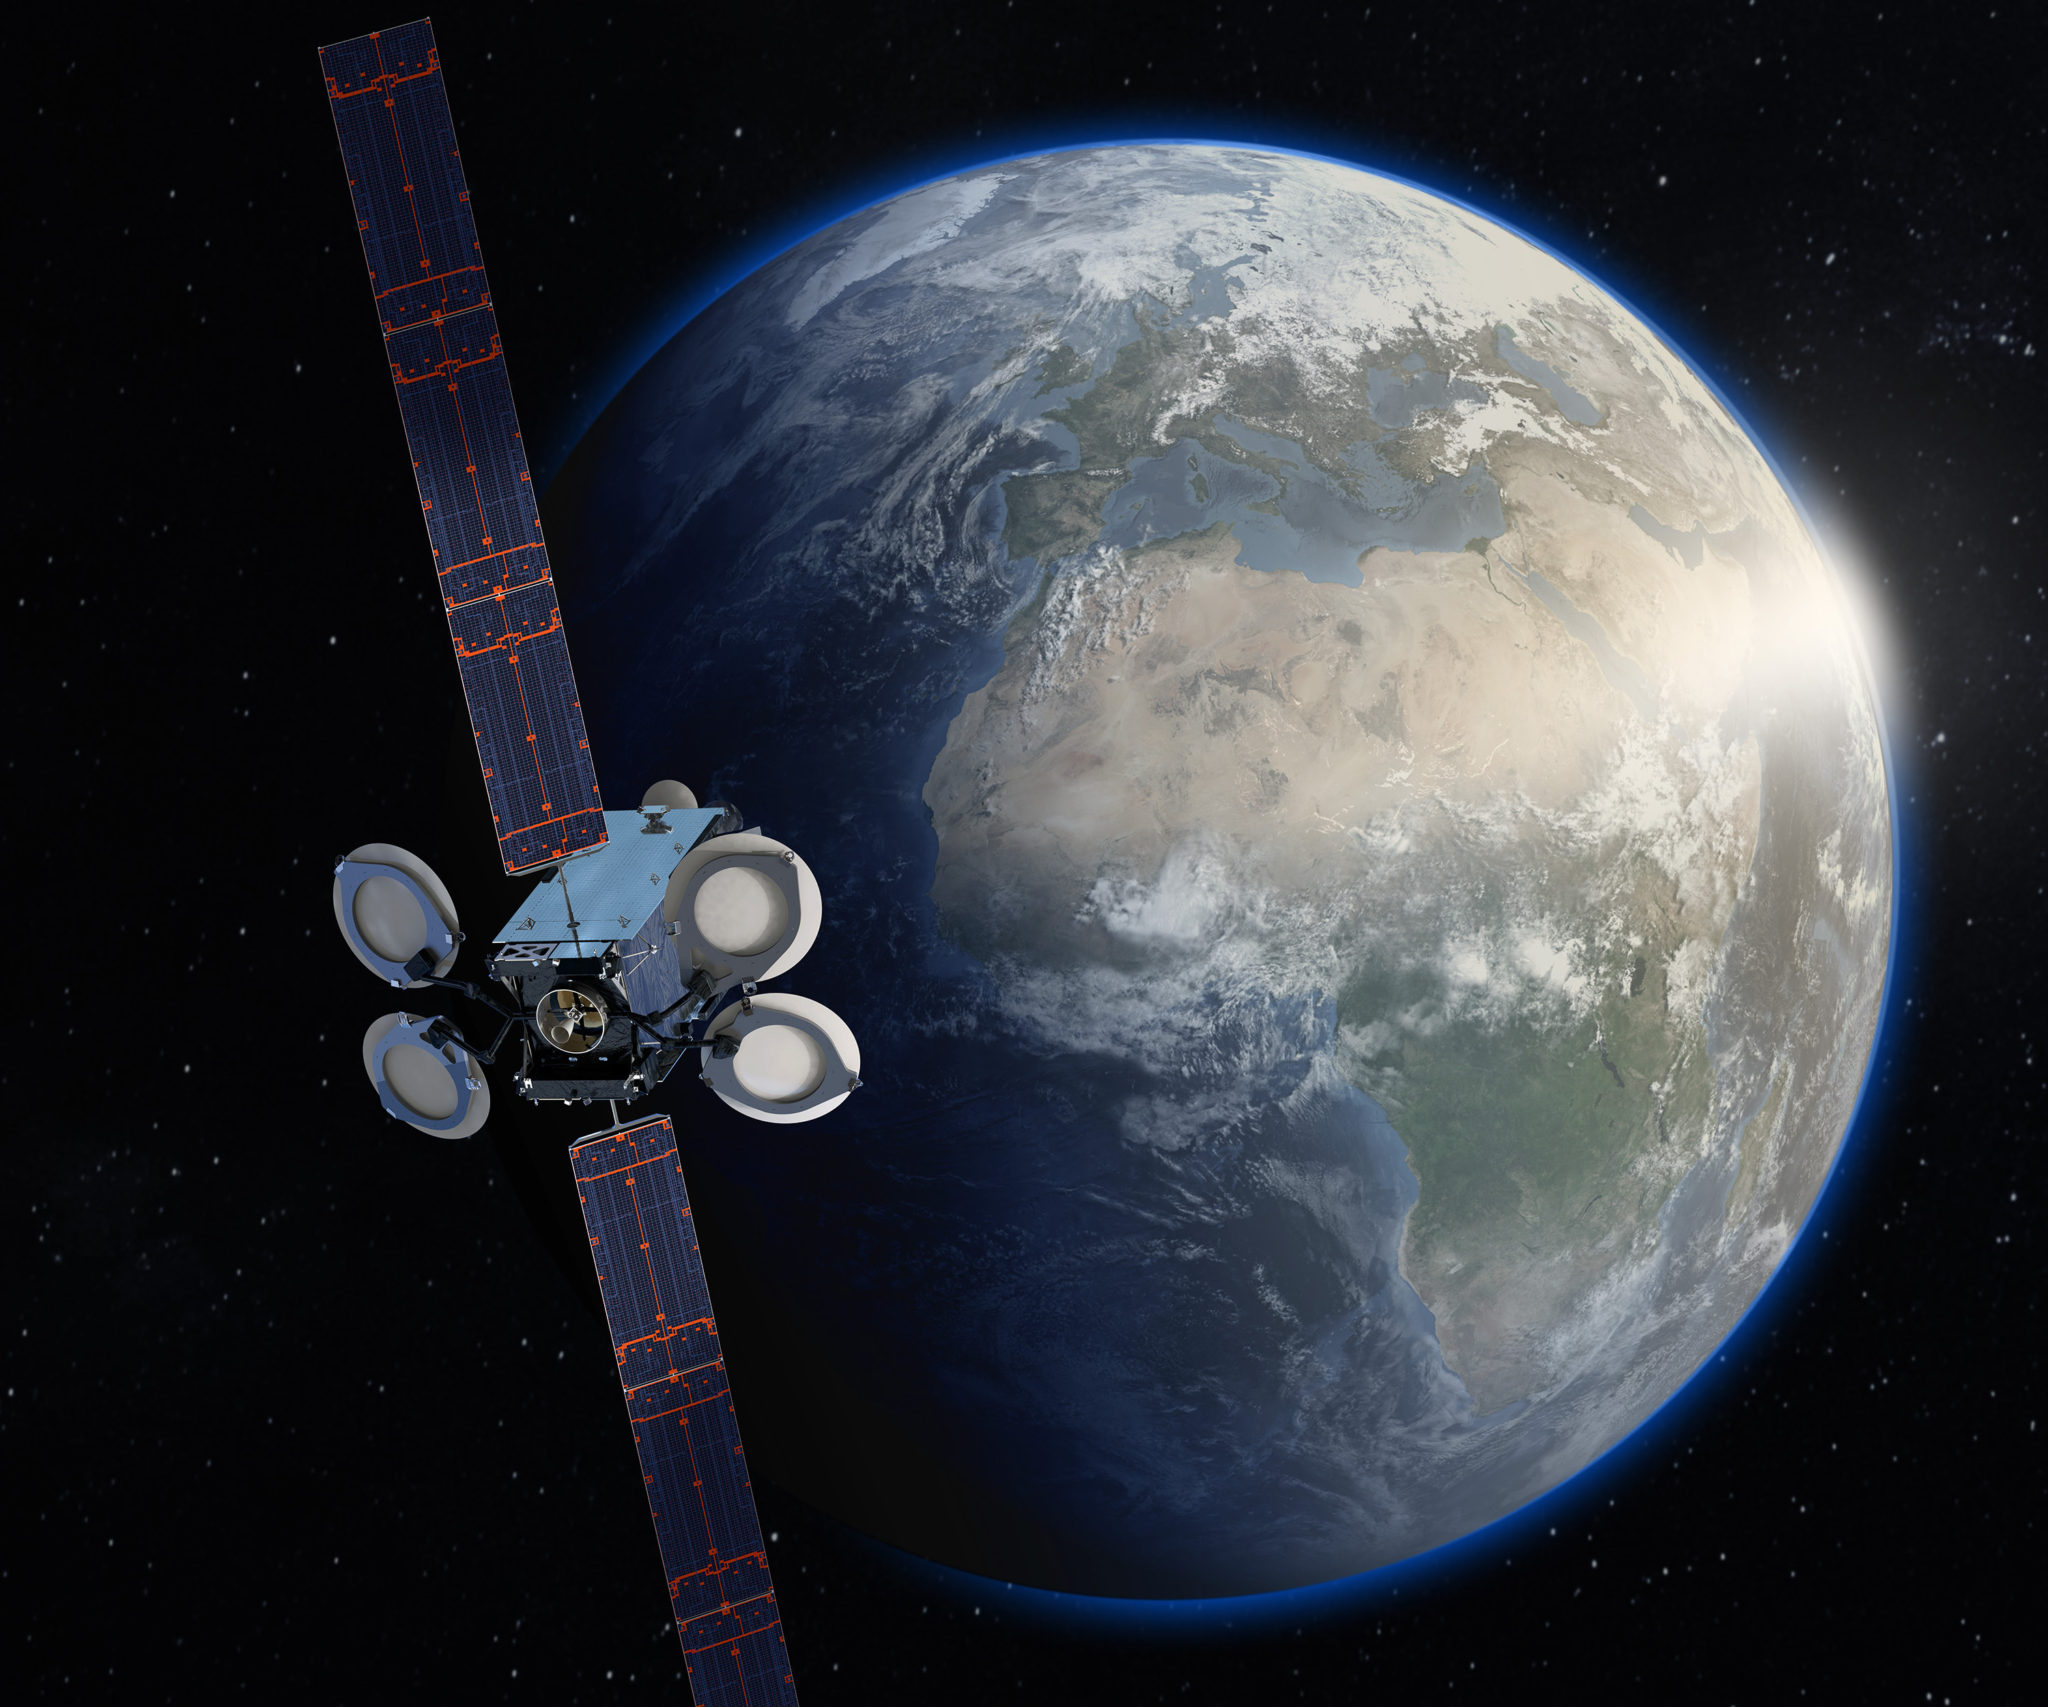 Amos-17 702 satellite Spacecom